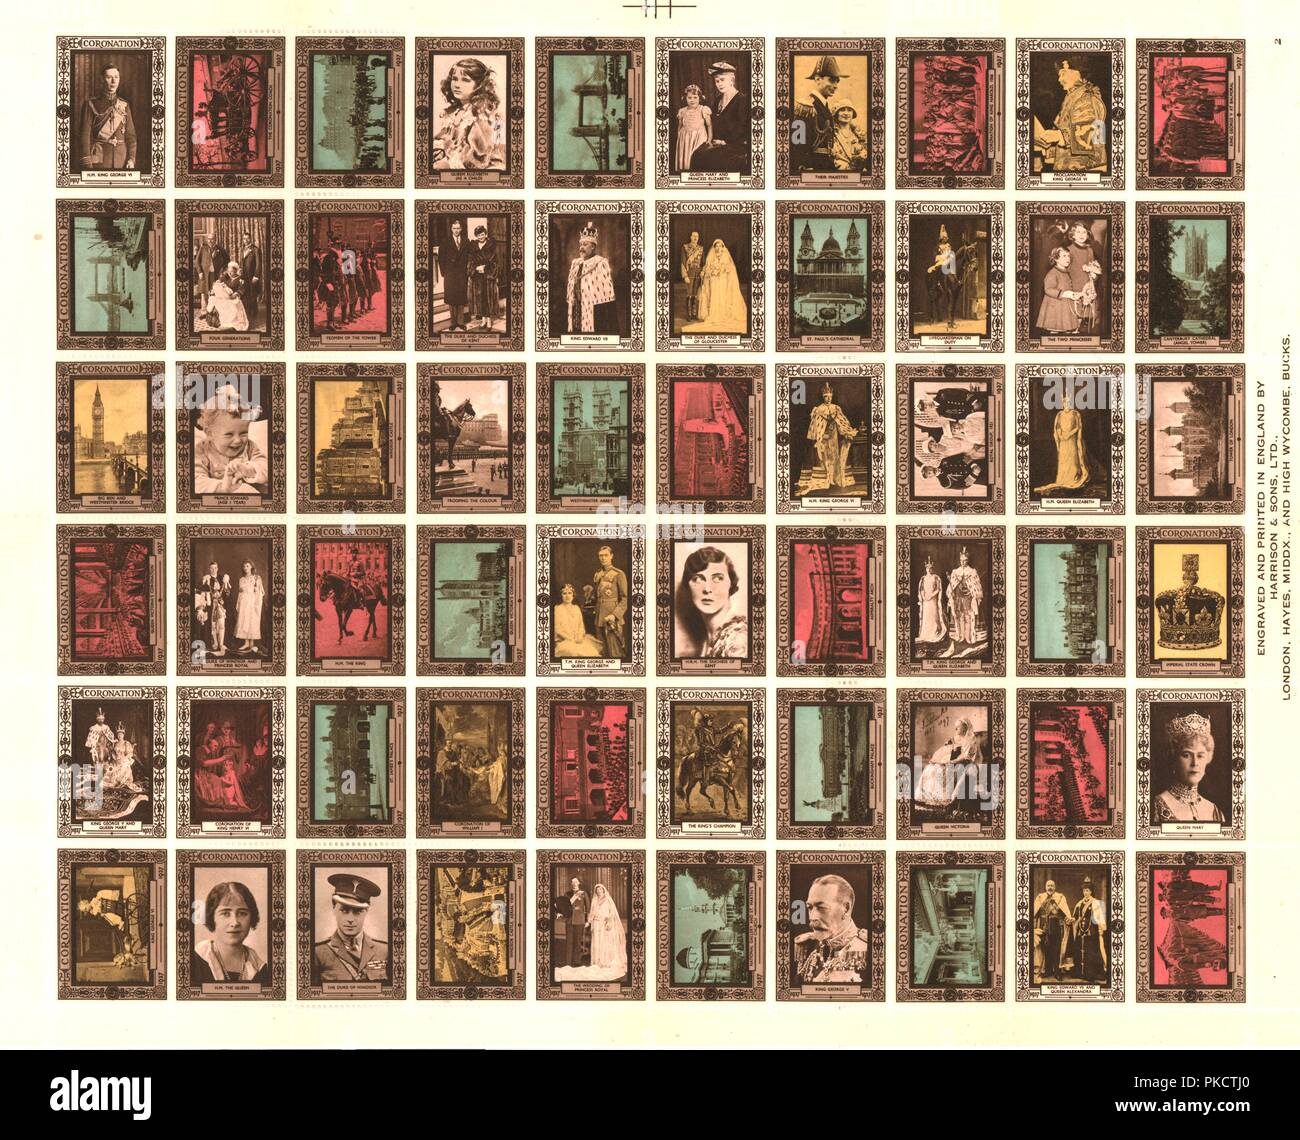 Sheet of 60 Cinderella stamps commemorating King George VI's coronation, 1937. Artist: Unknown. Stock Photo